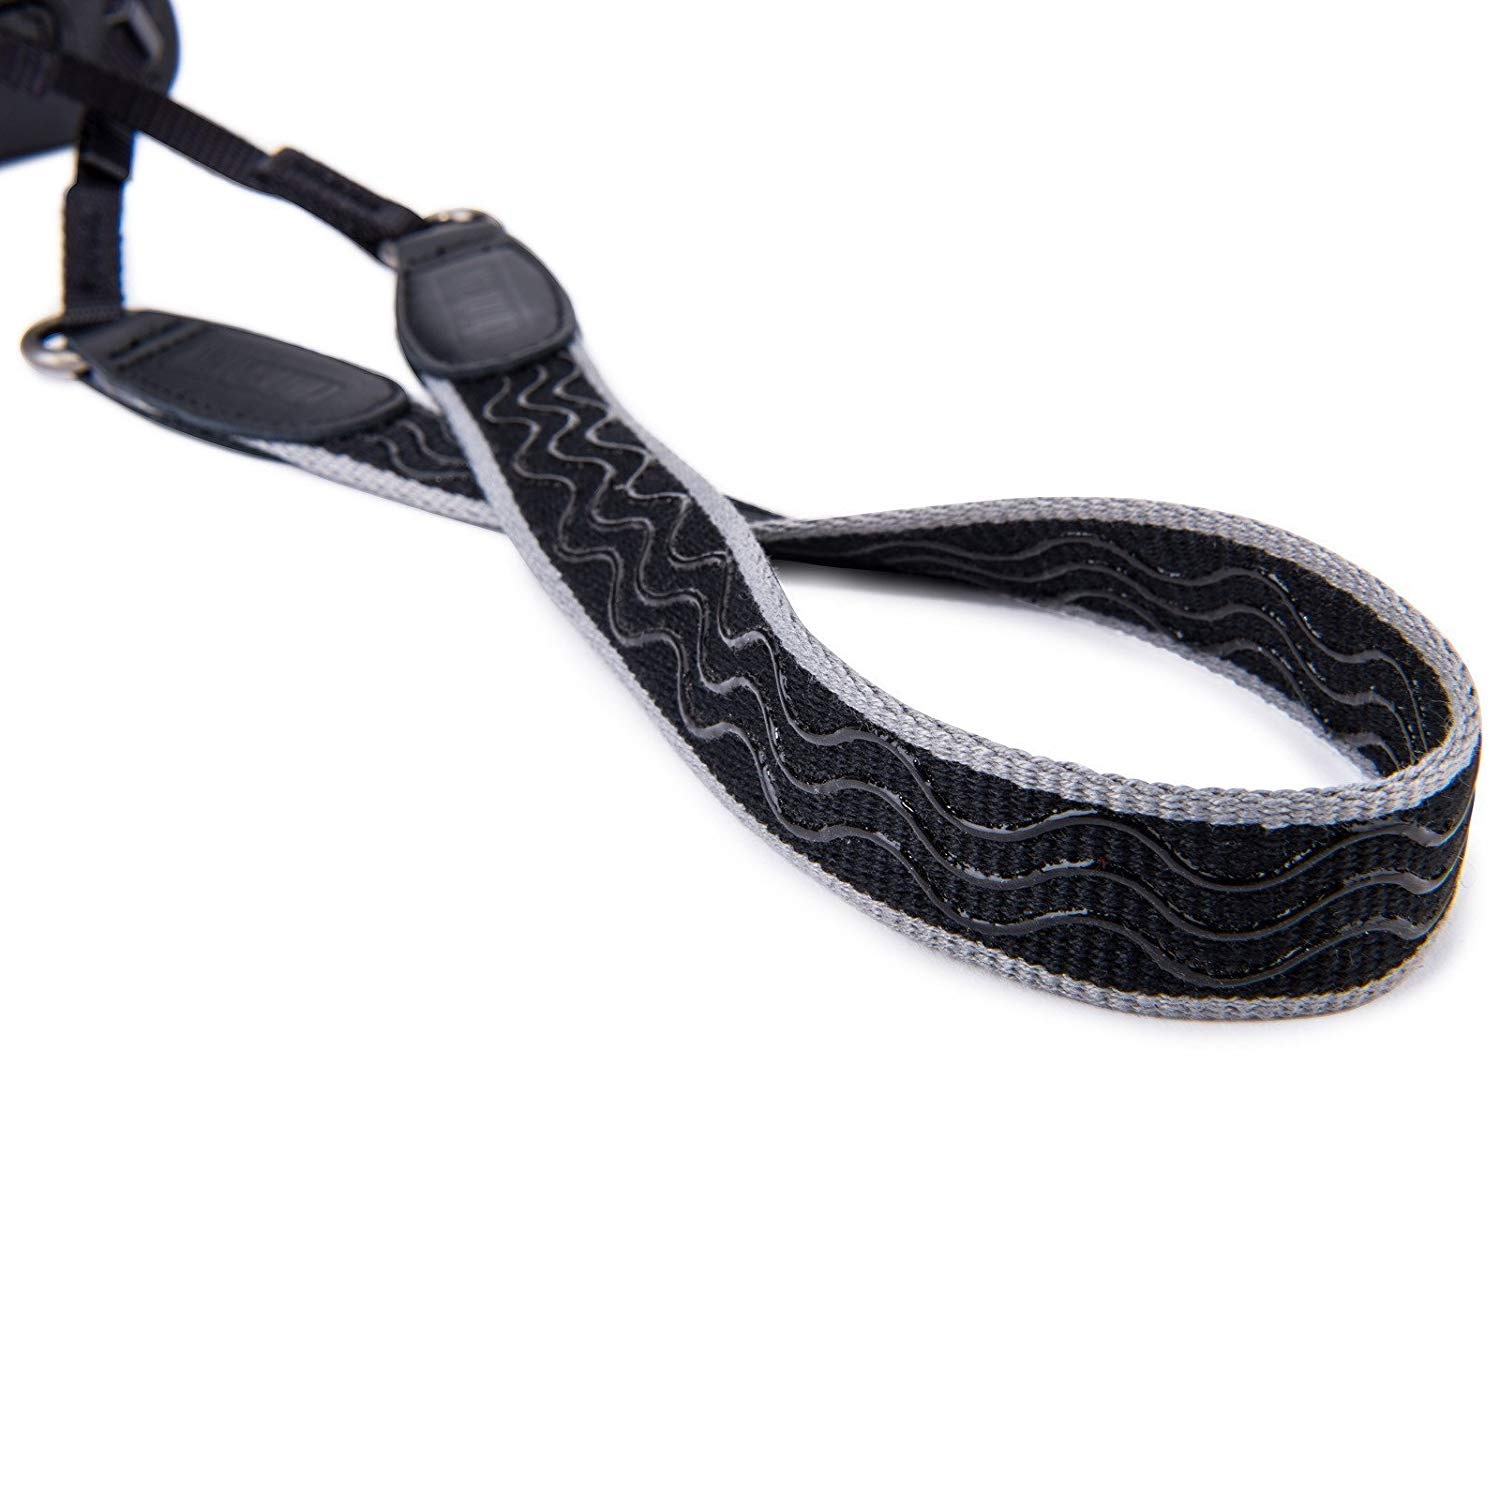 ThinkTank Camera Strap V2.0